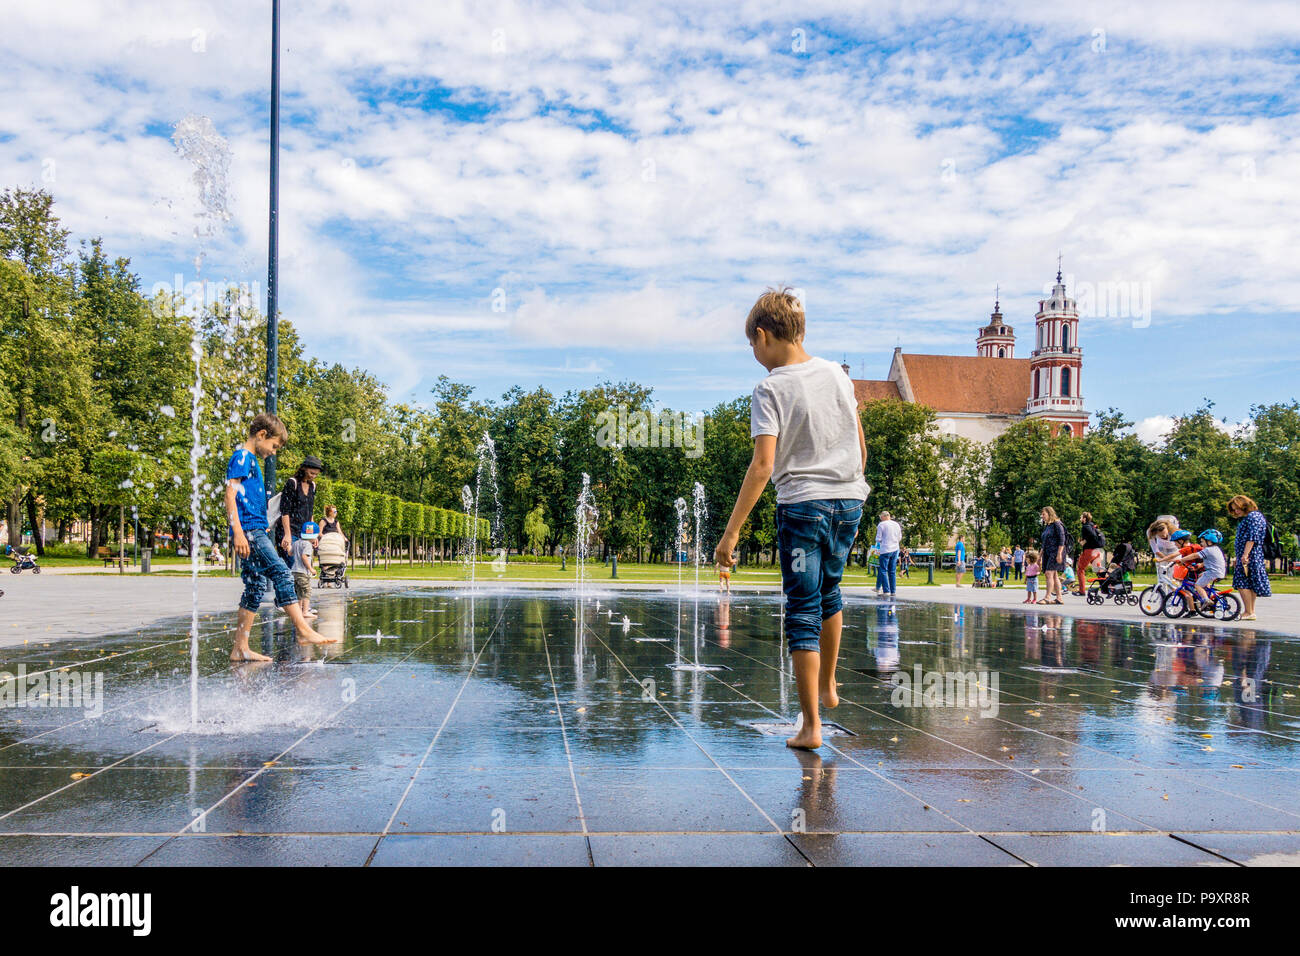 Vilnius Lithuania, July 06 2018: Happy kids have fun playing in city water fountain on hot summer day in Lukiskes square - Stock Image